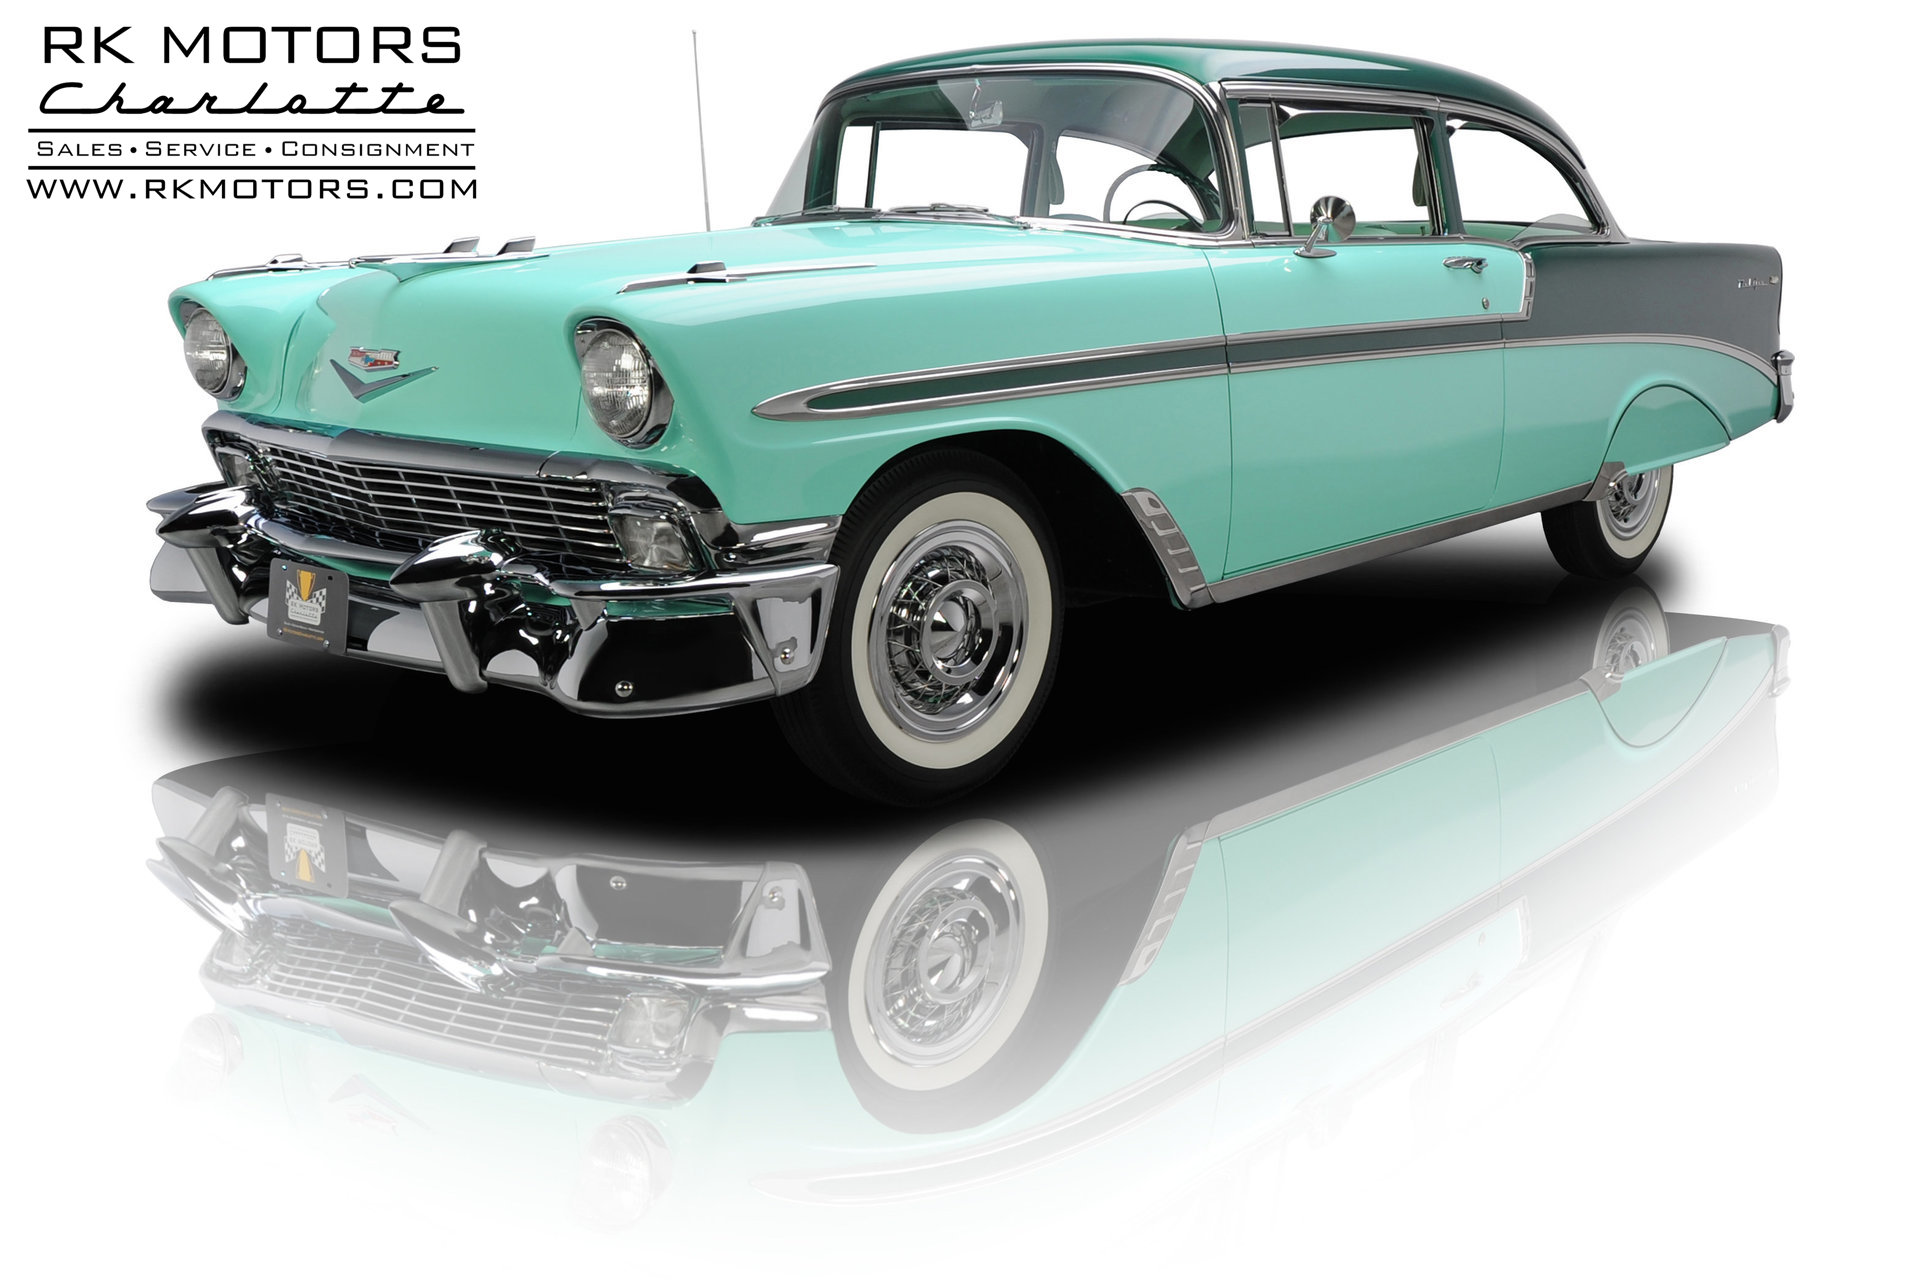 133310 1956 Chevrolet Bel Air | RK Motors Classic and Performance ...